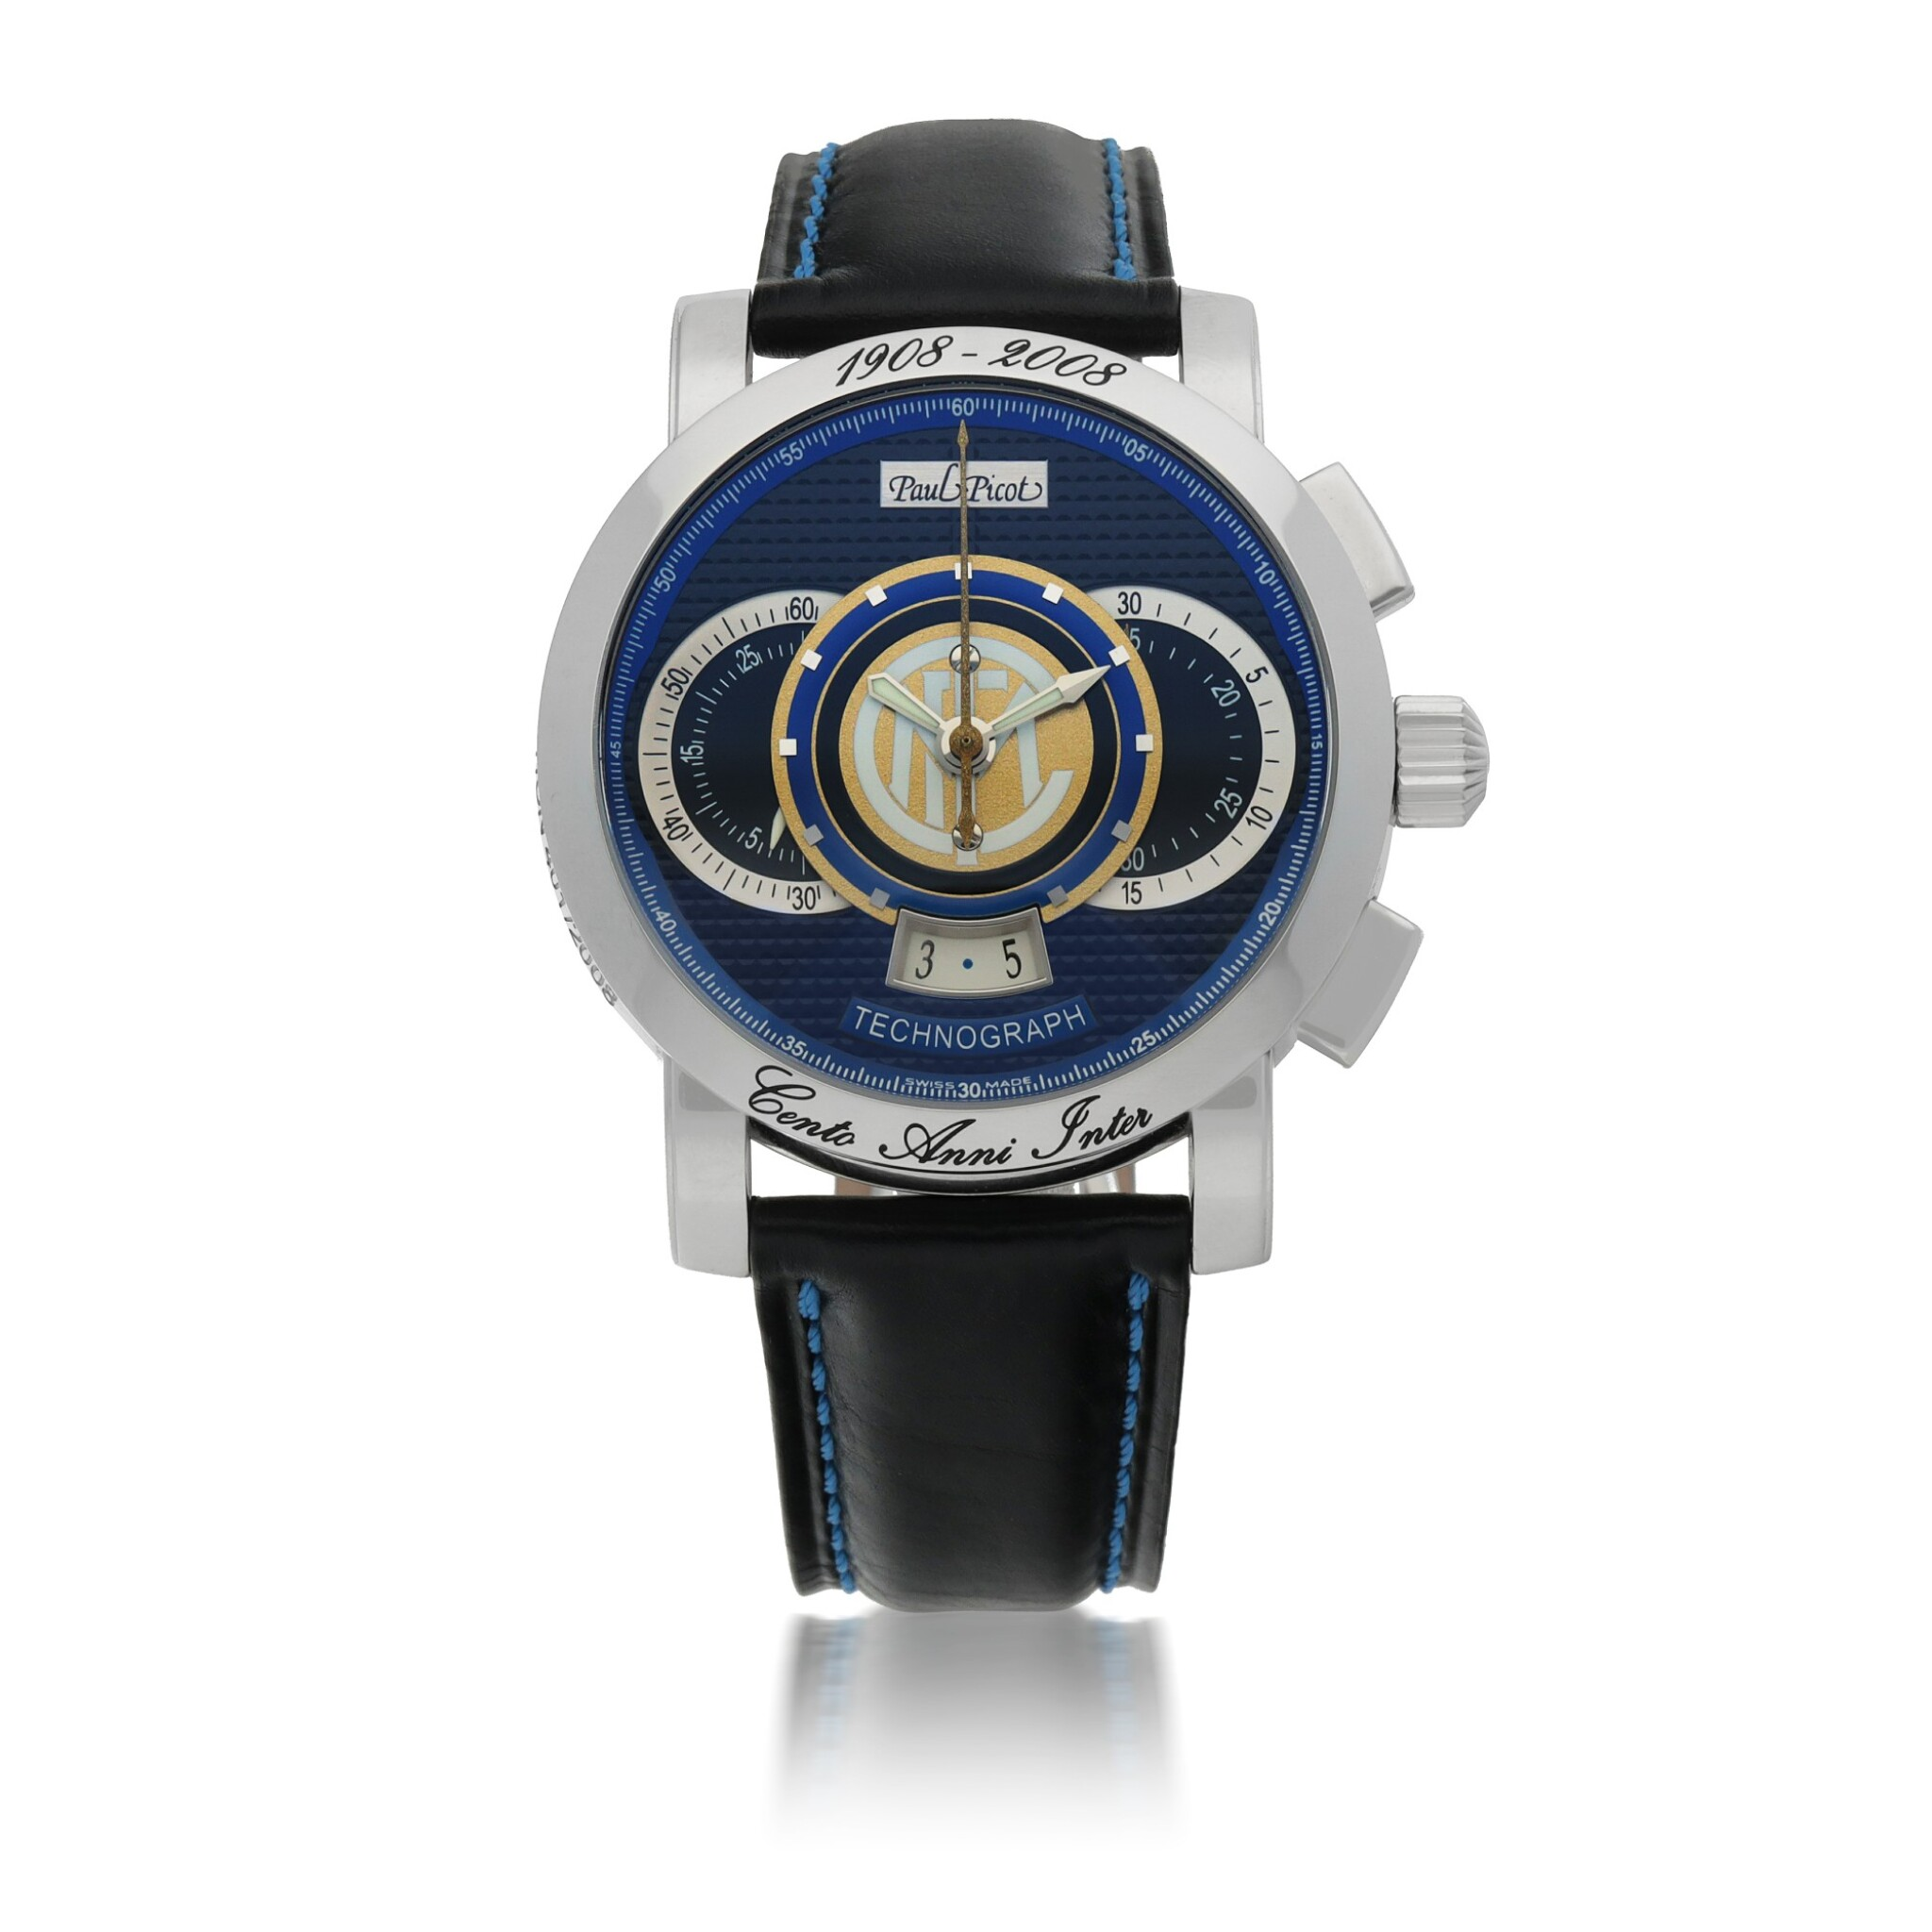 View full screen - View 1 of Lot 913. 'CENTO ANNI INTER' TECHNOGRAPH, REF 0334. SGI LIMITED EDITION STAINLESS STEEL CHRONOGRAPH WRISTWATCH WITH DATE MADE TO COMMEMORATE THE 100TH ANNIVERSARY OF INTER MILAN FOOTBALL CLUB CIRCA 2008.